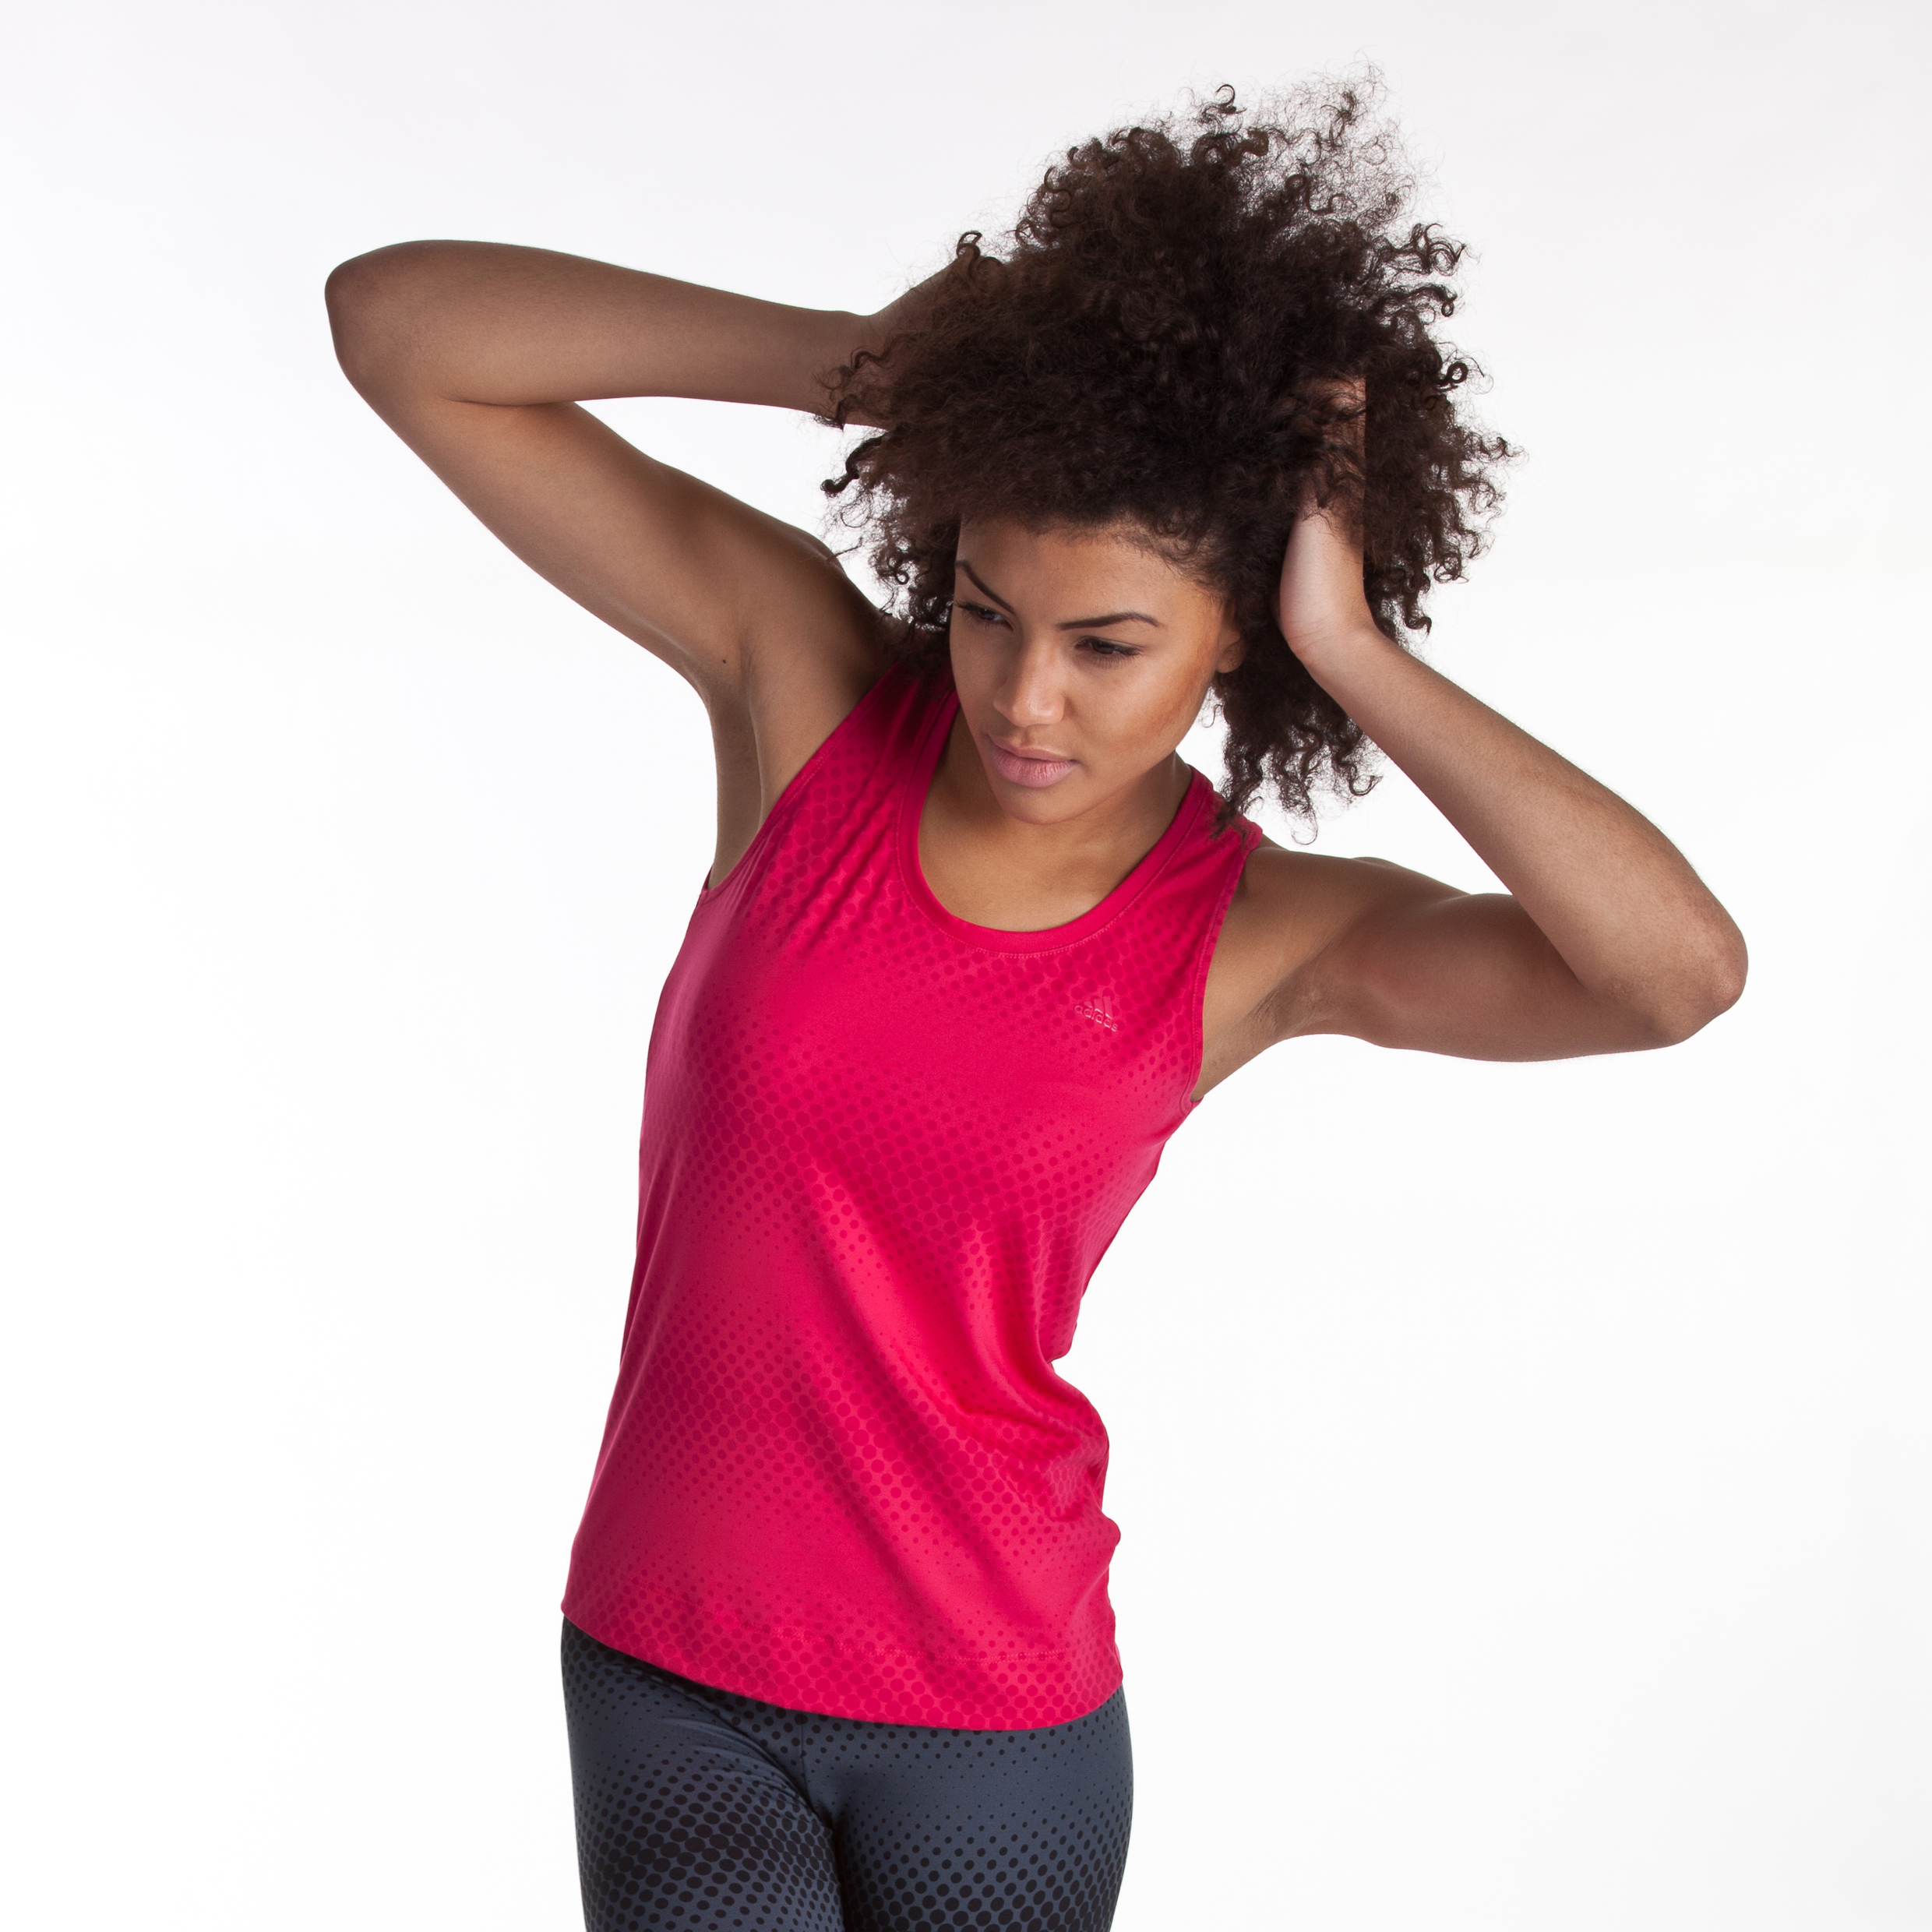 Adidas Multifunctional Essentials Allover Tank - Bright Pink - Women